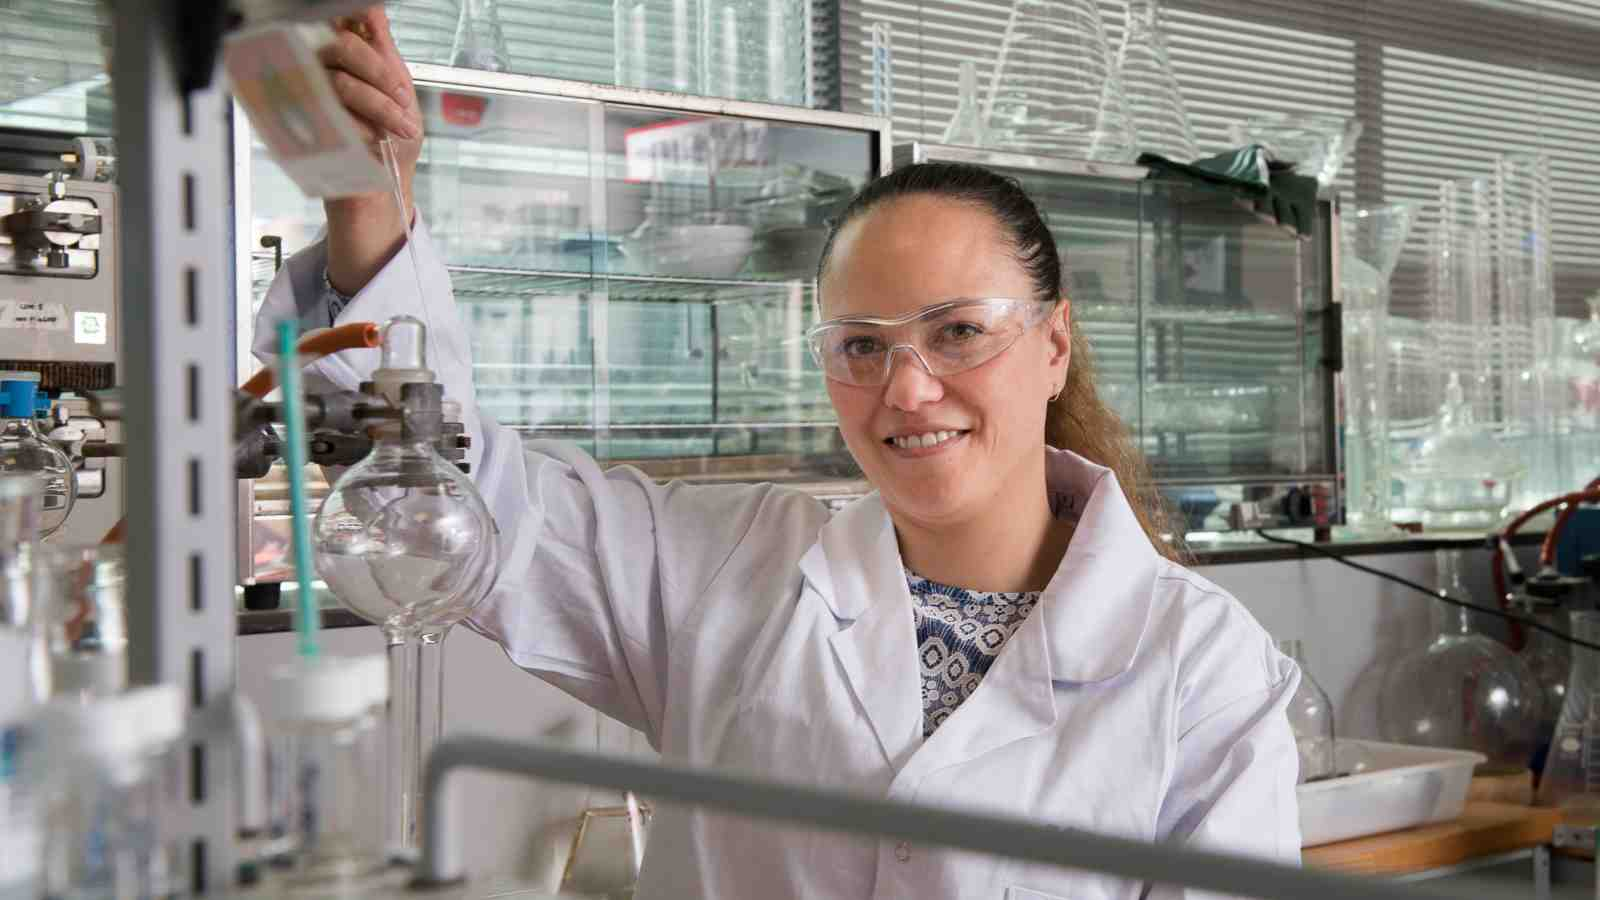 PhD Candidate Helen Woolner uses chemistry equipment in a laboratory.